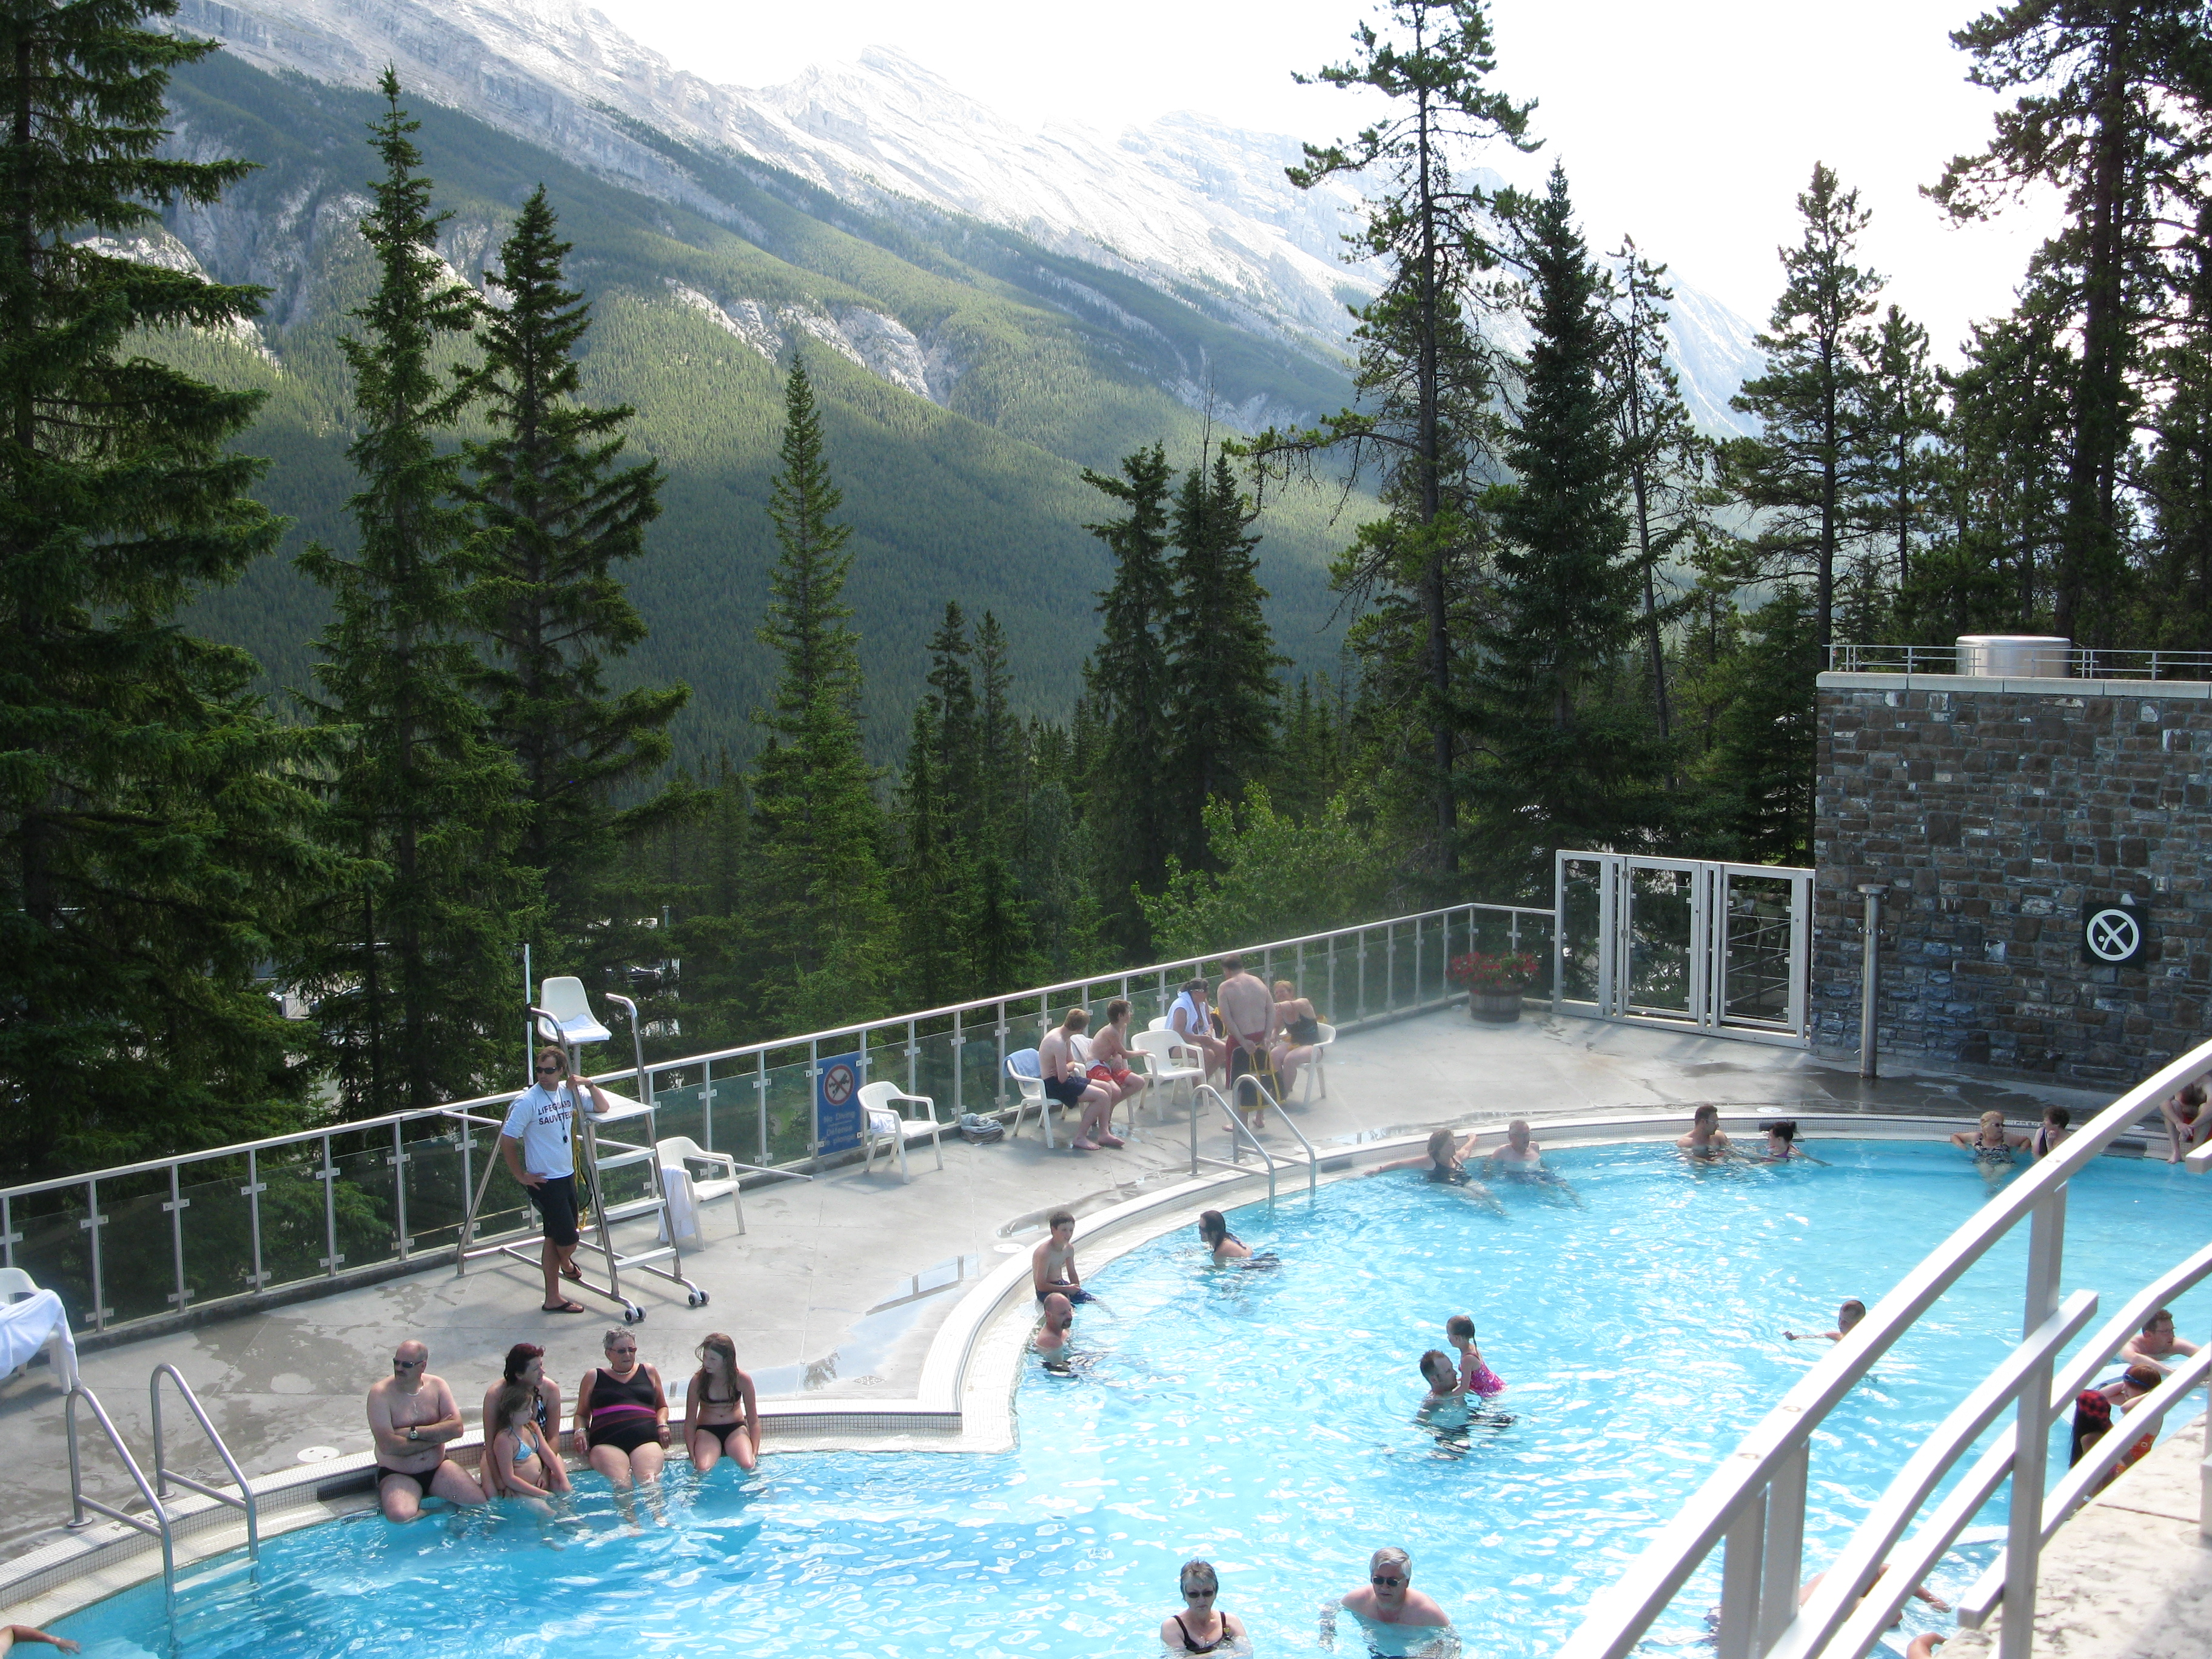 Brewster Attractions Banff National Park, Banff Upper Hot Springs | Ray's Well